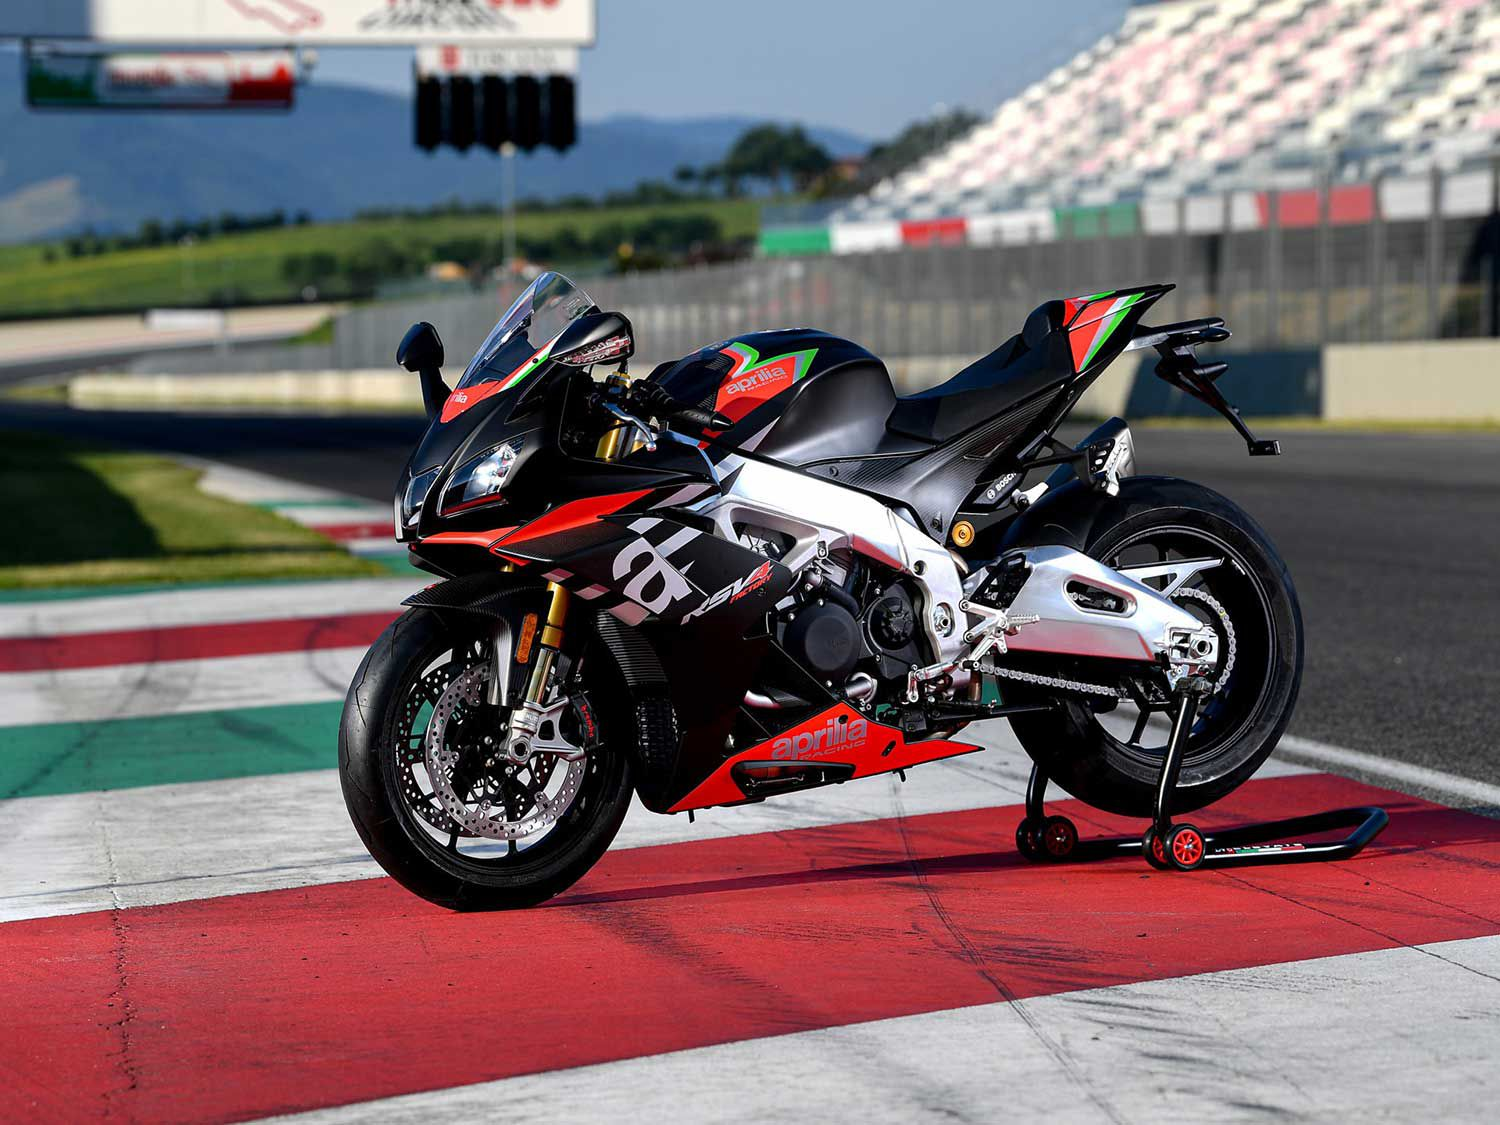 The Aprilia RSV4 1100 Factory is priced at $25,499, but packs one serious punch in terms of literbike performance.